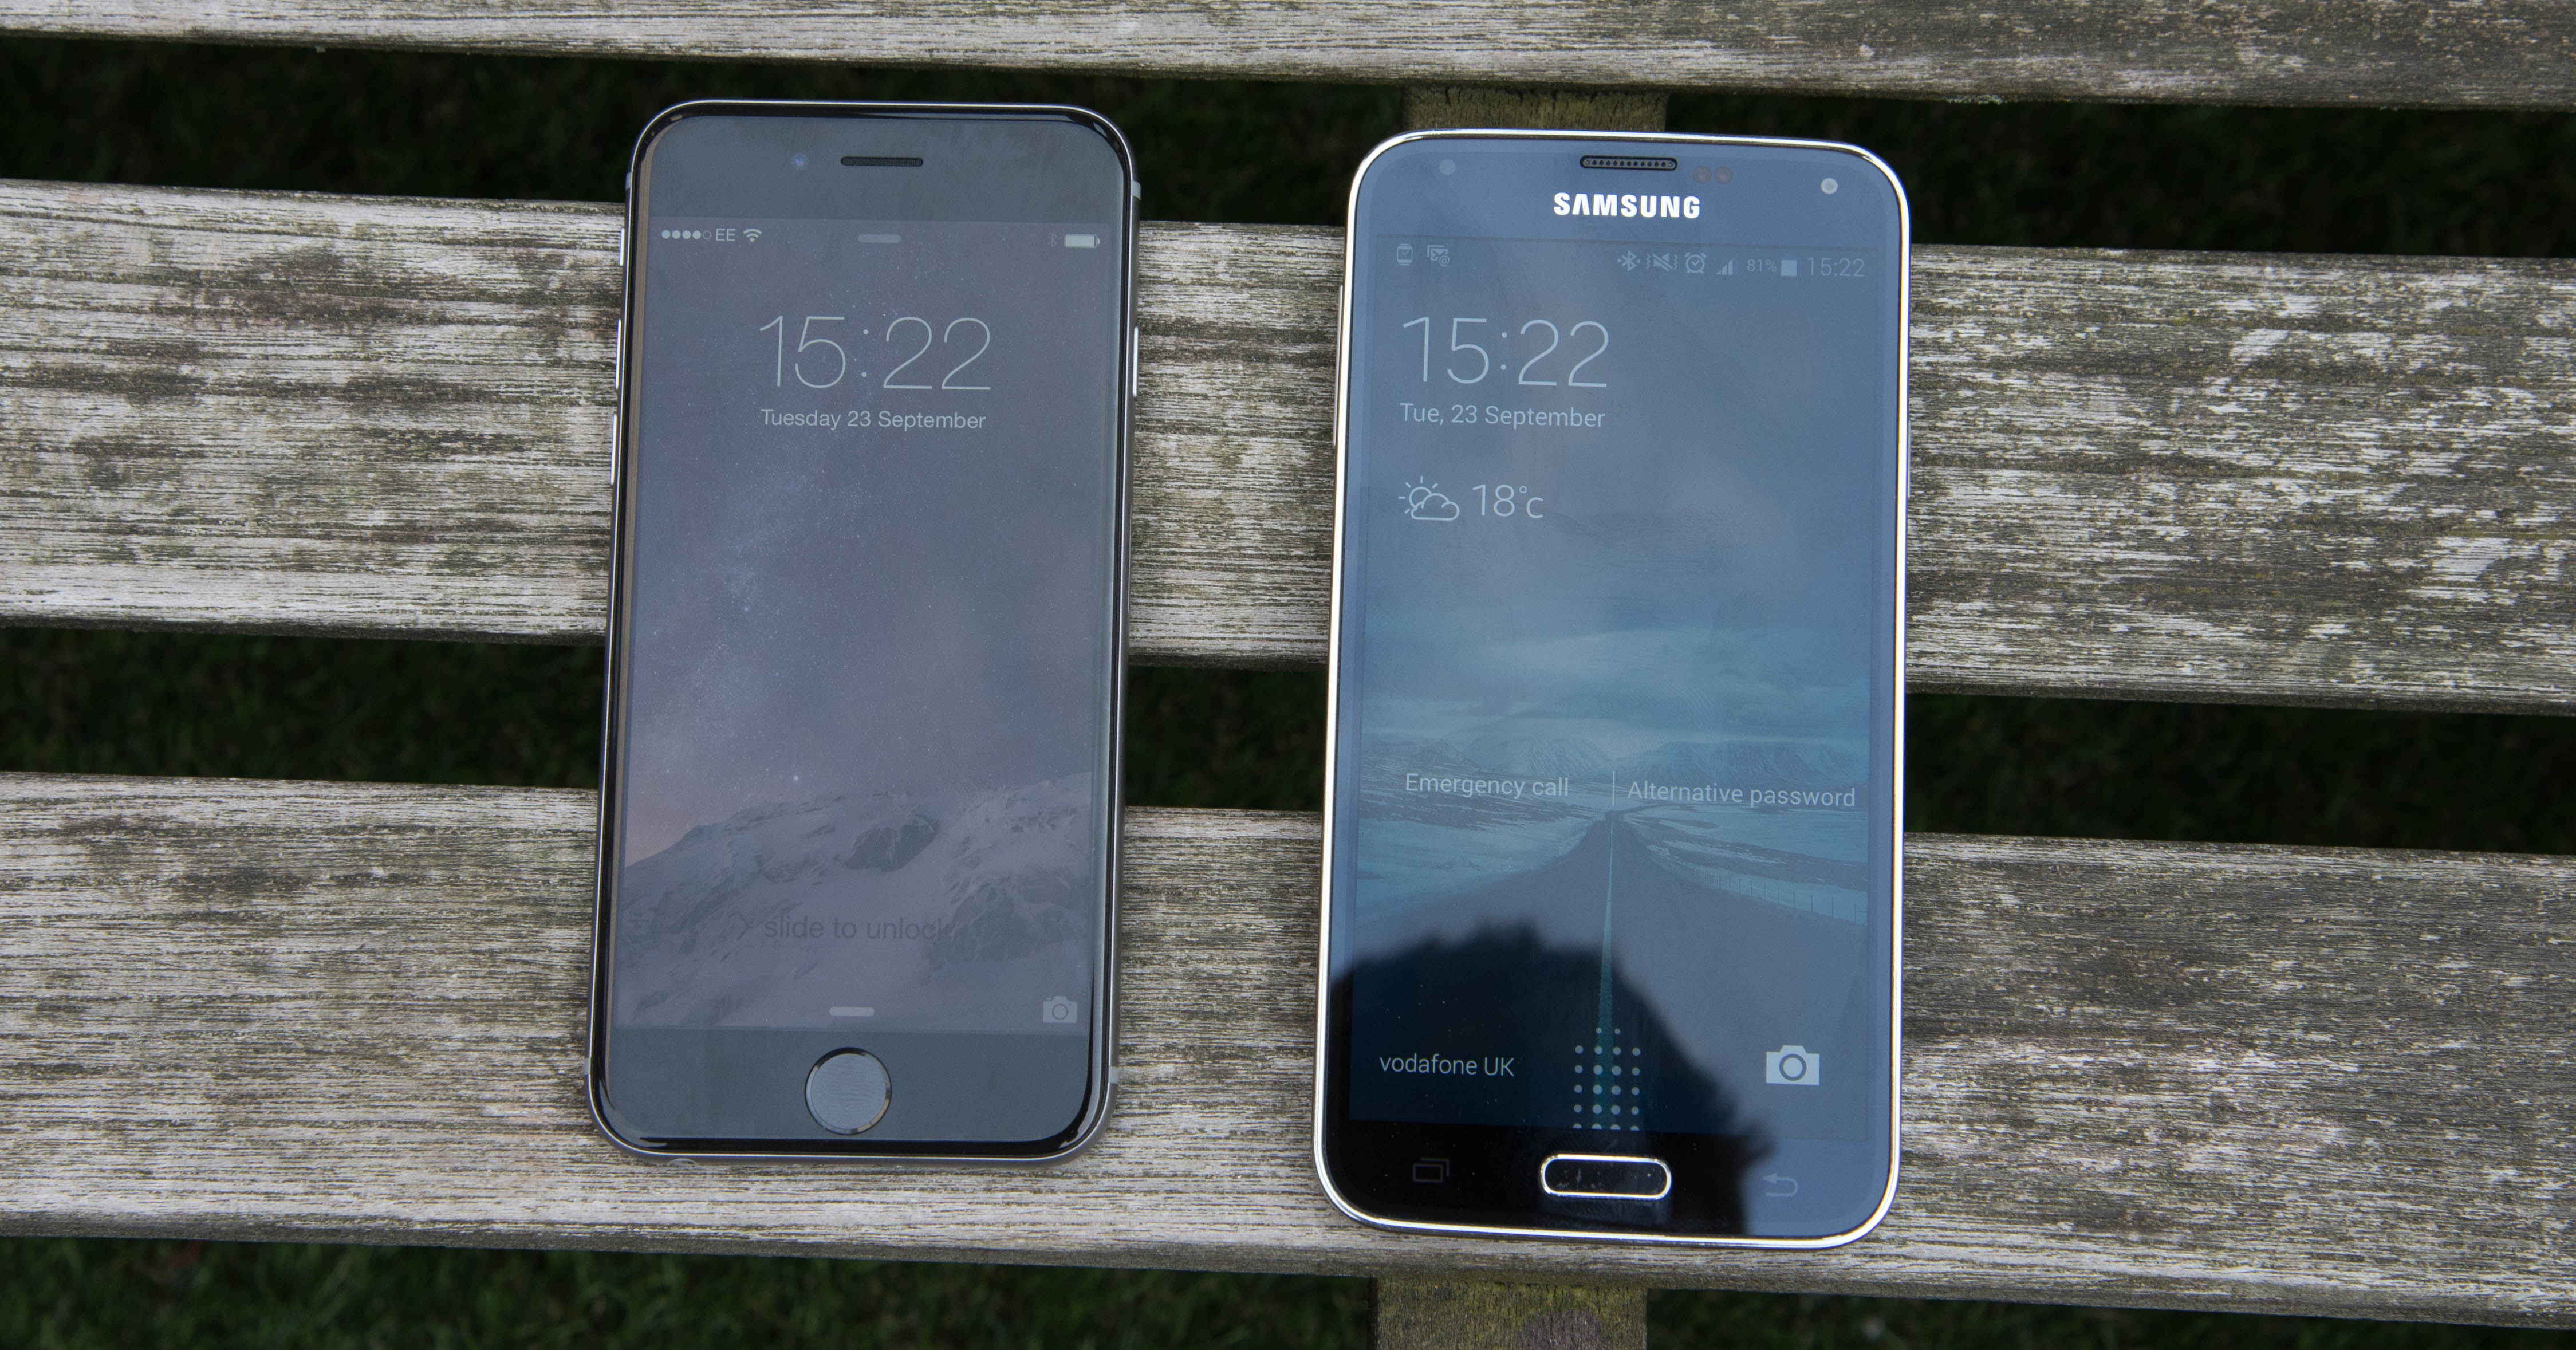 Galaxy s5 Dimensions vs Iphone 6 Iphone 6 vs Samsung Galaxy s5